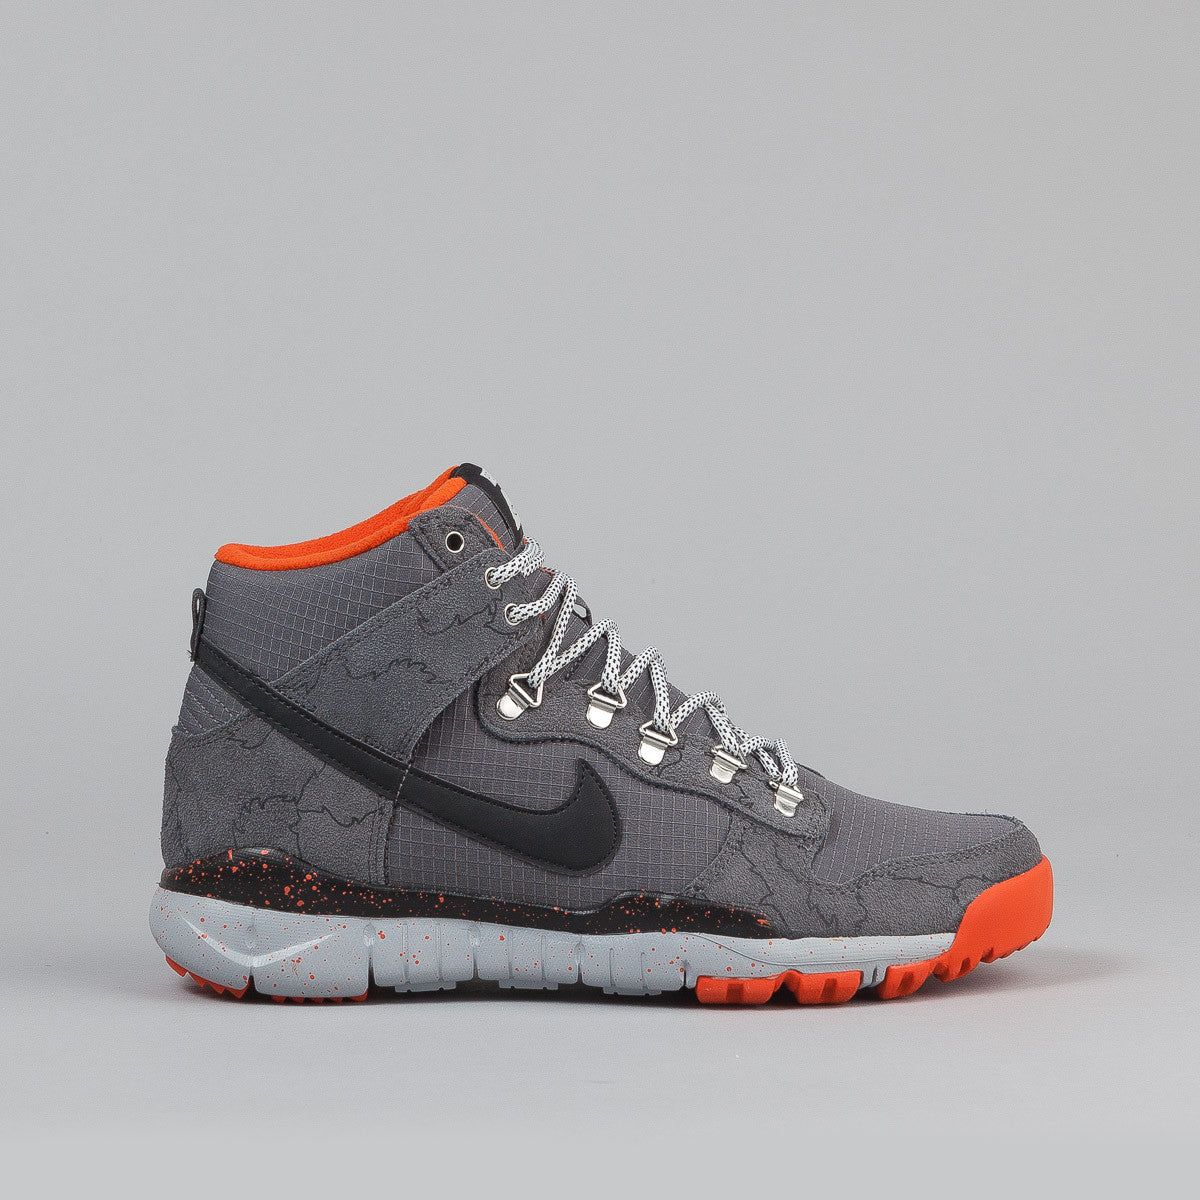 Nike SB Dunk High R/R - Dark Grey / Black / Wolf Grey